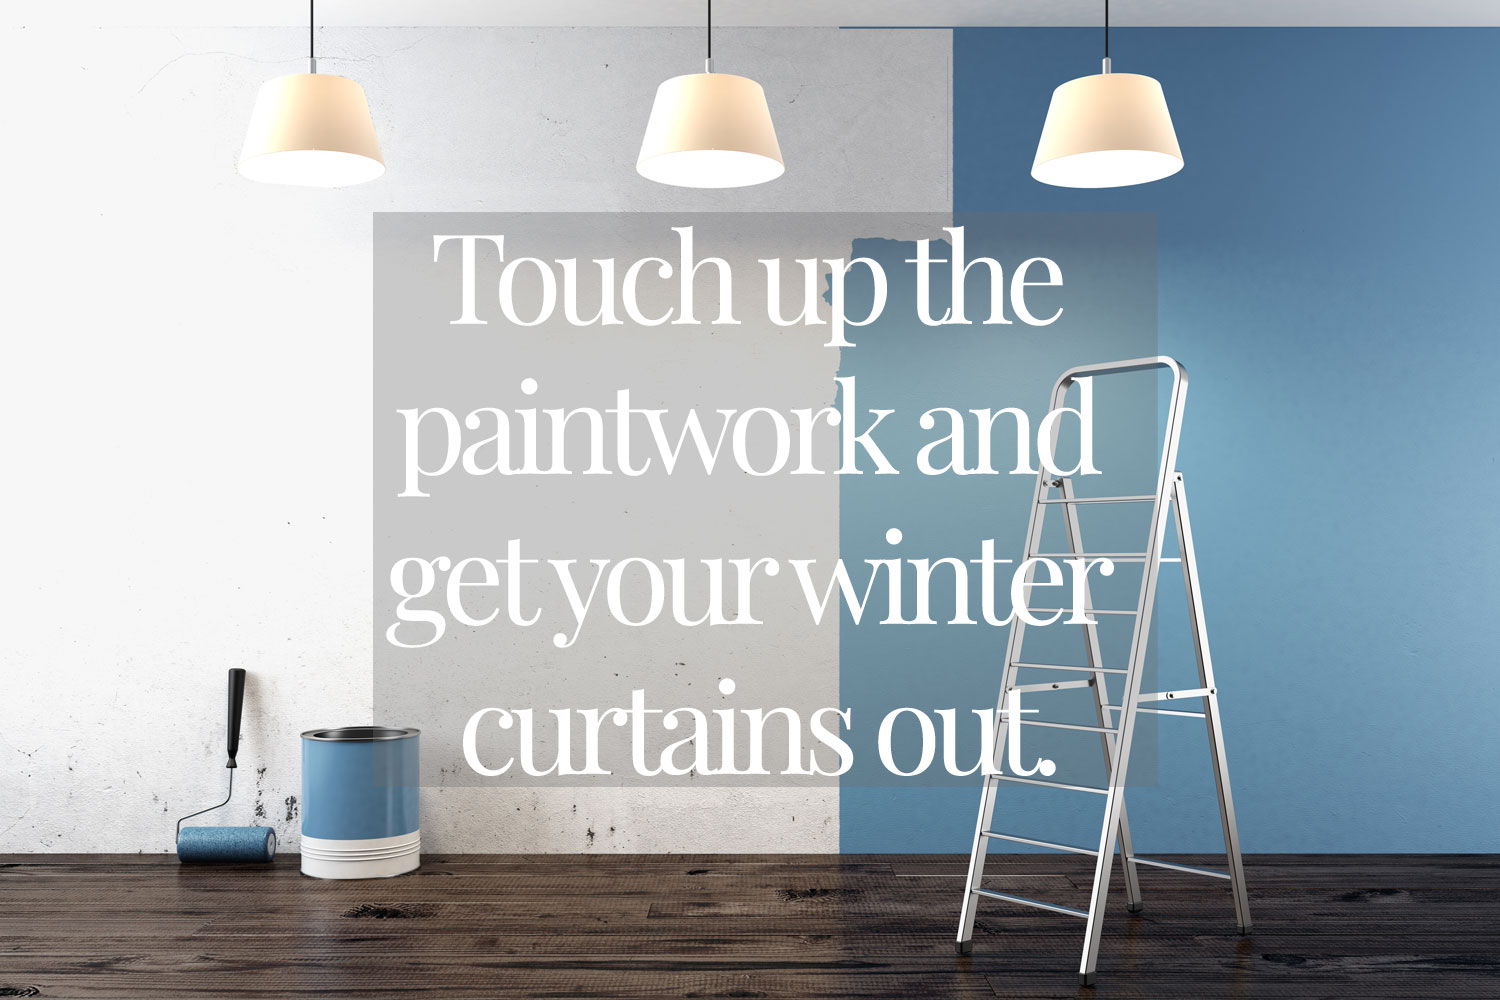 touch-up-the-paintwork-and-get-your-winter-curtains-out